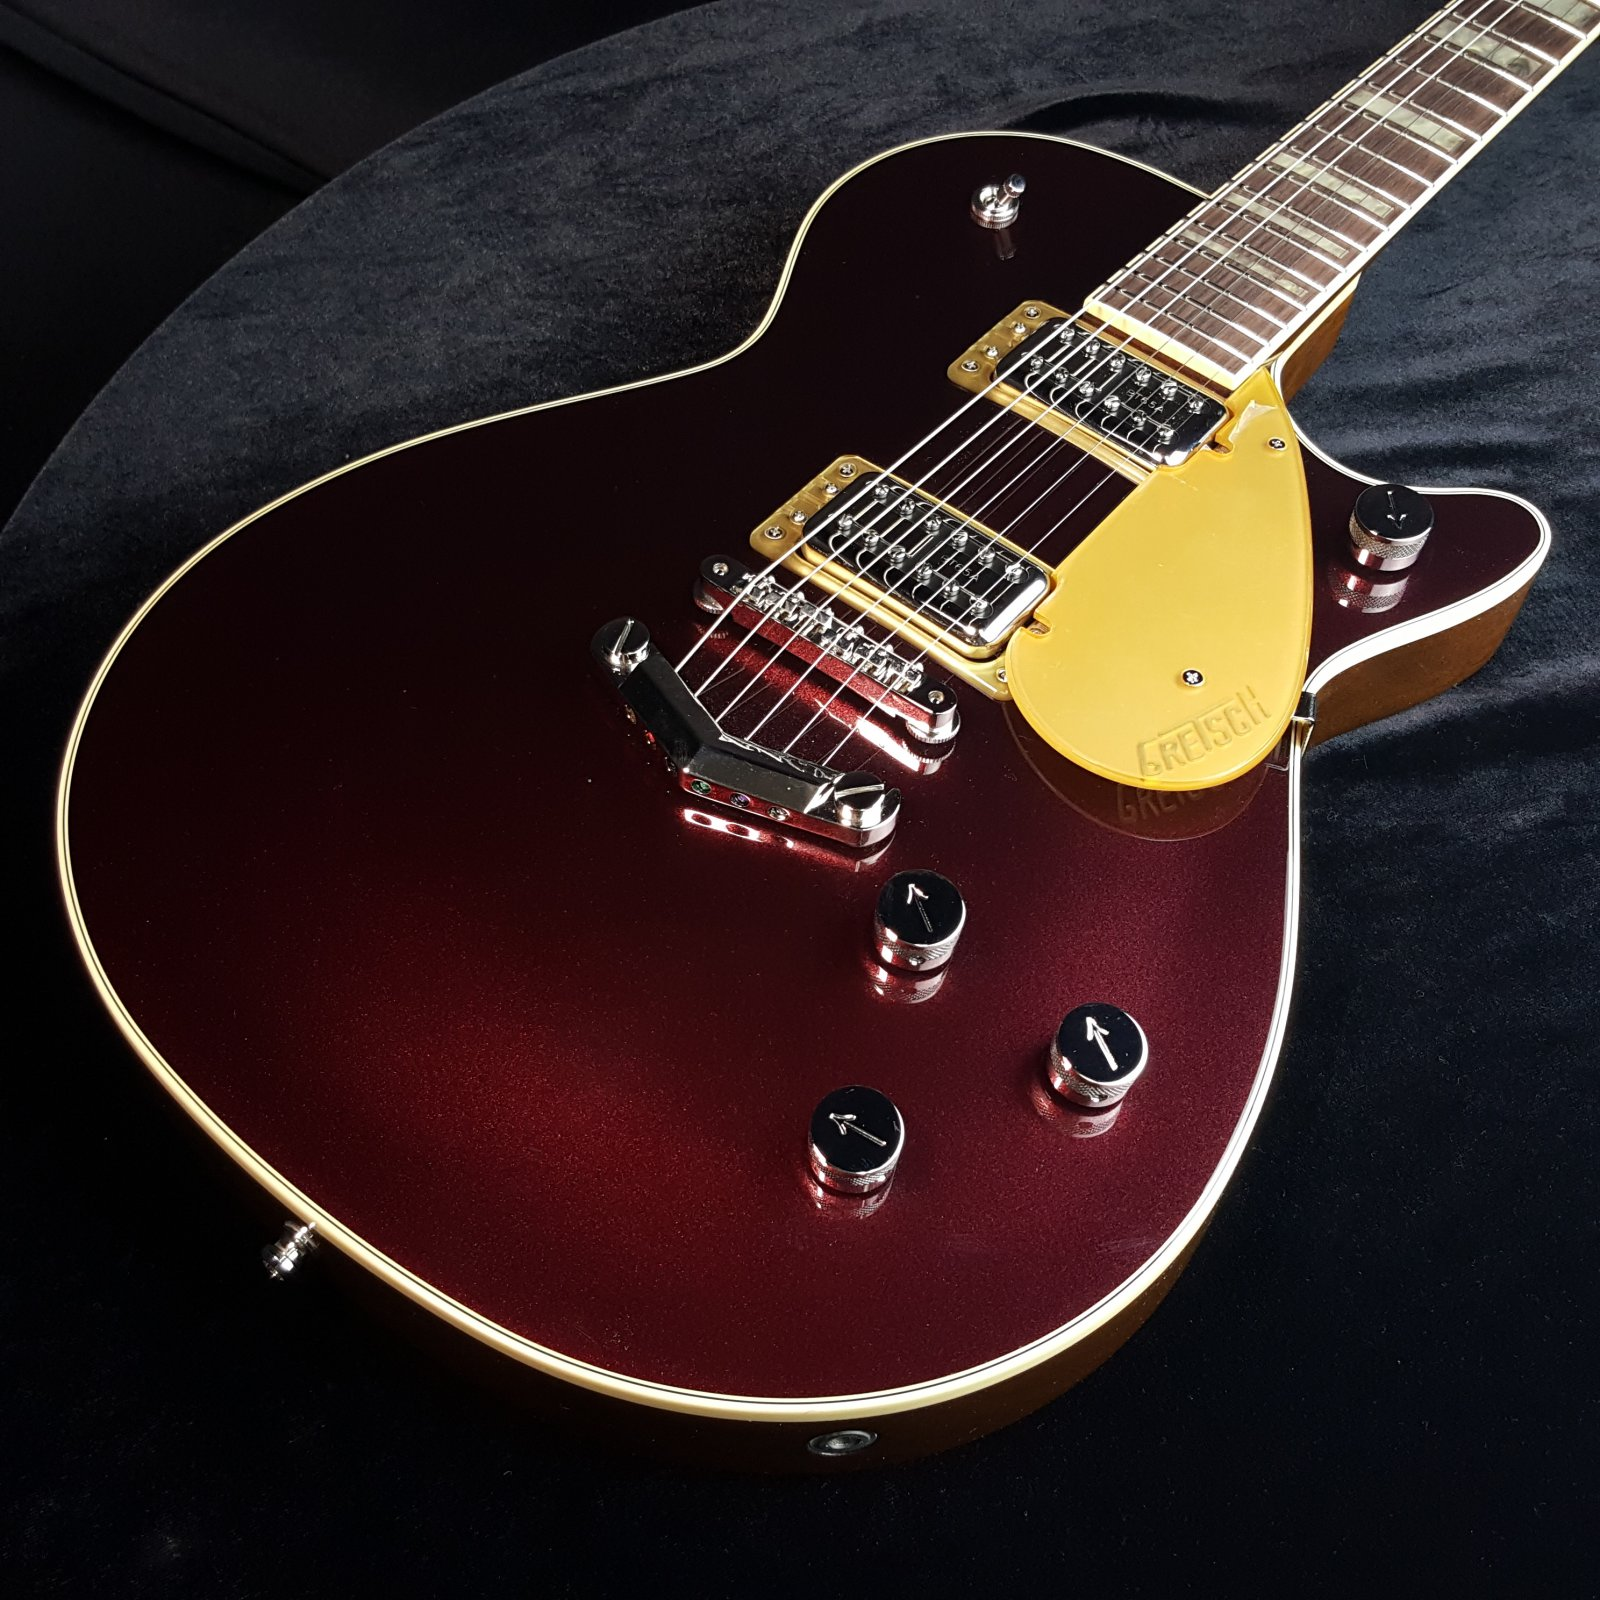 Gretsch G6228 Player's Edition Jet Dark Cherry Metallic 2018